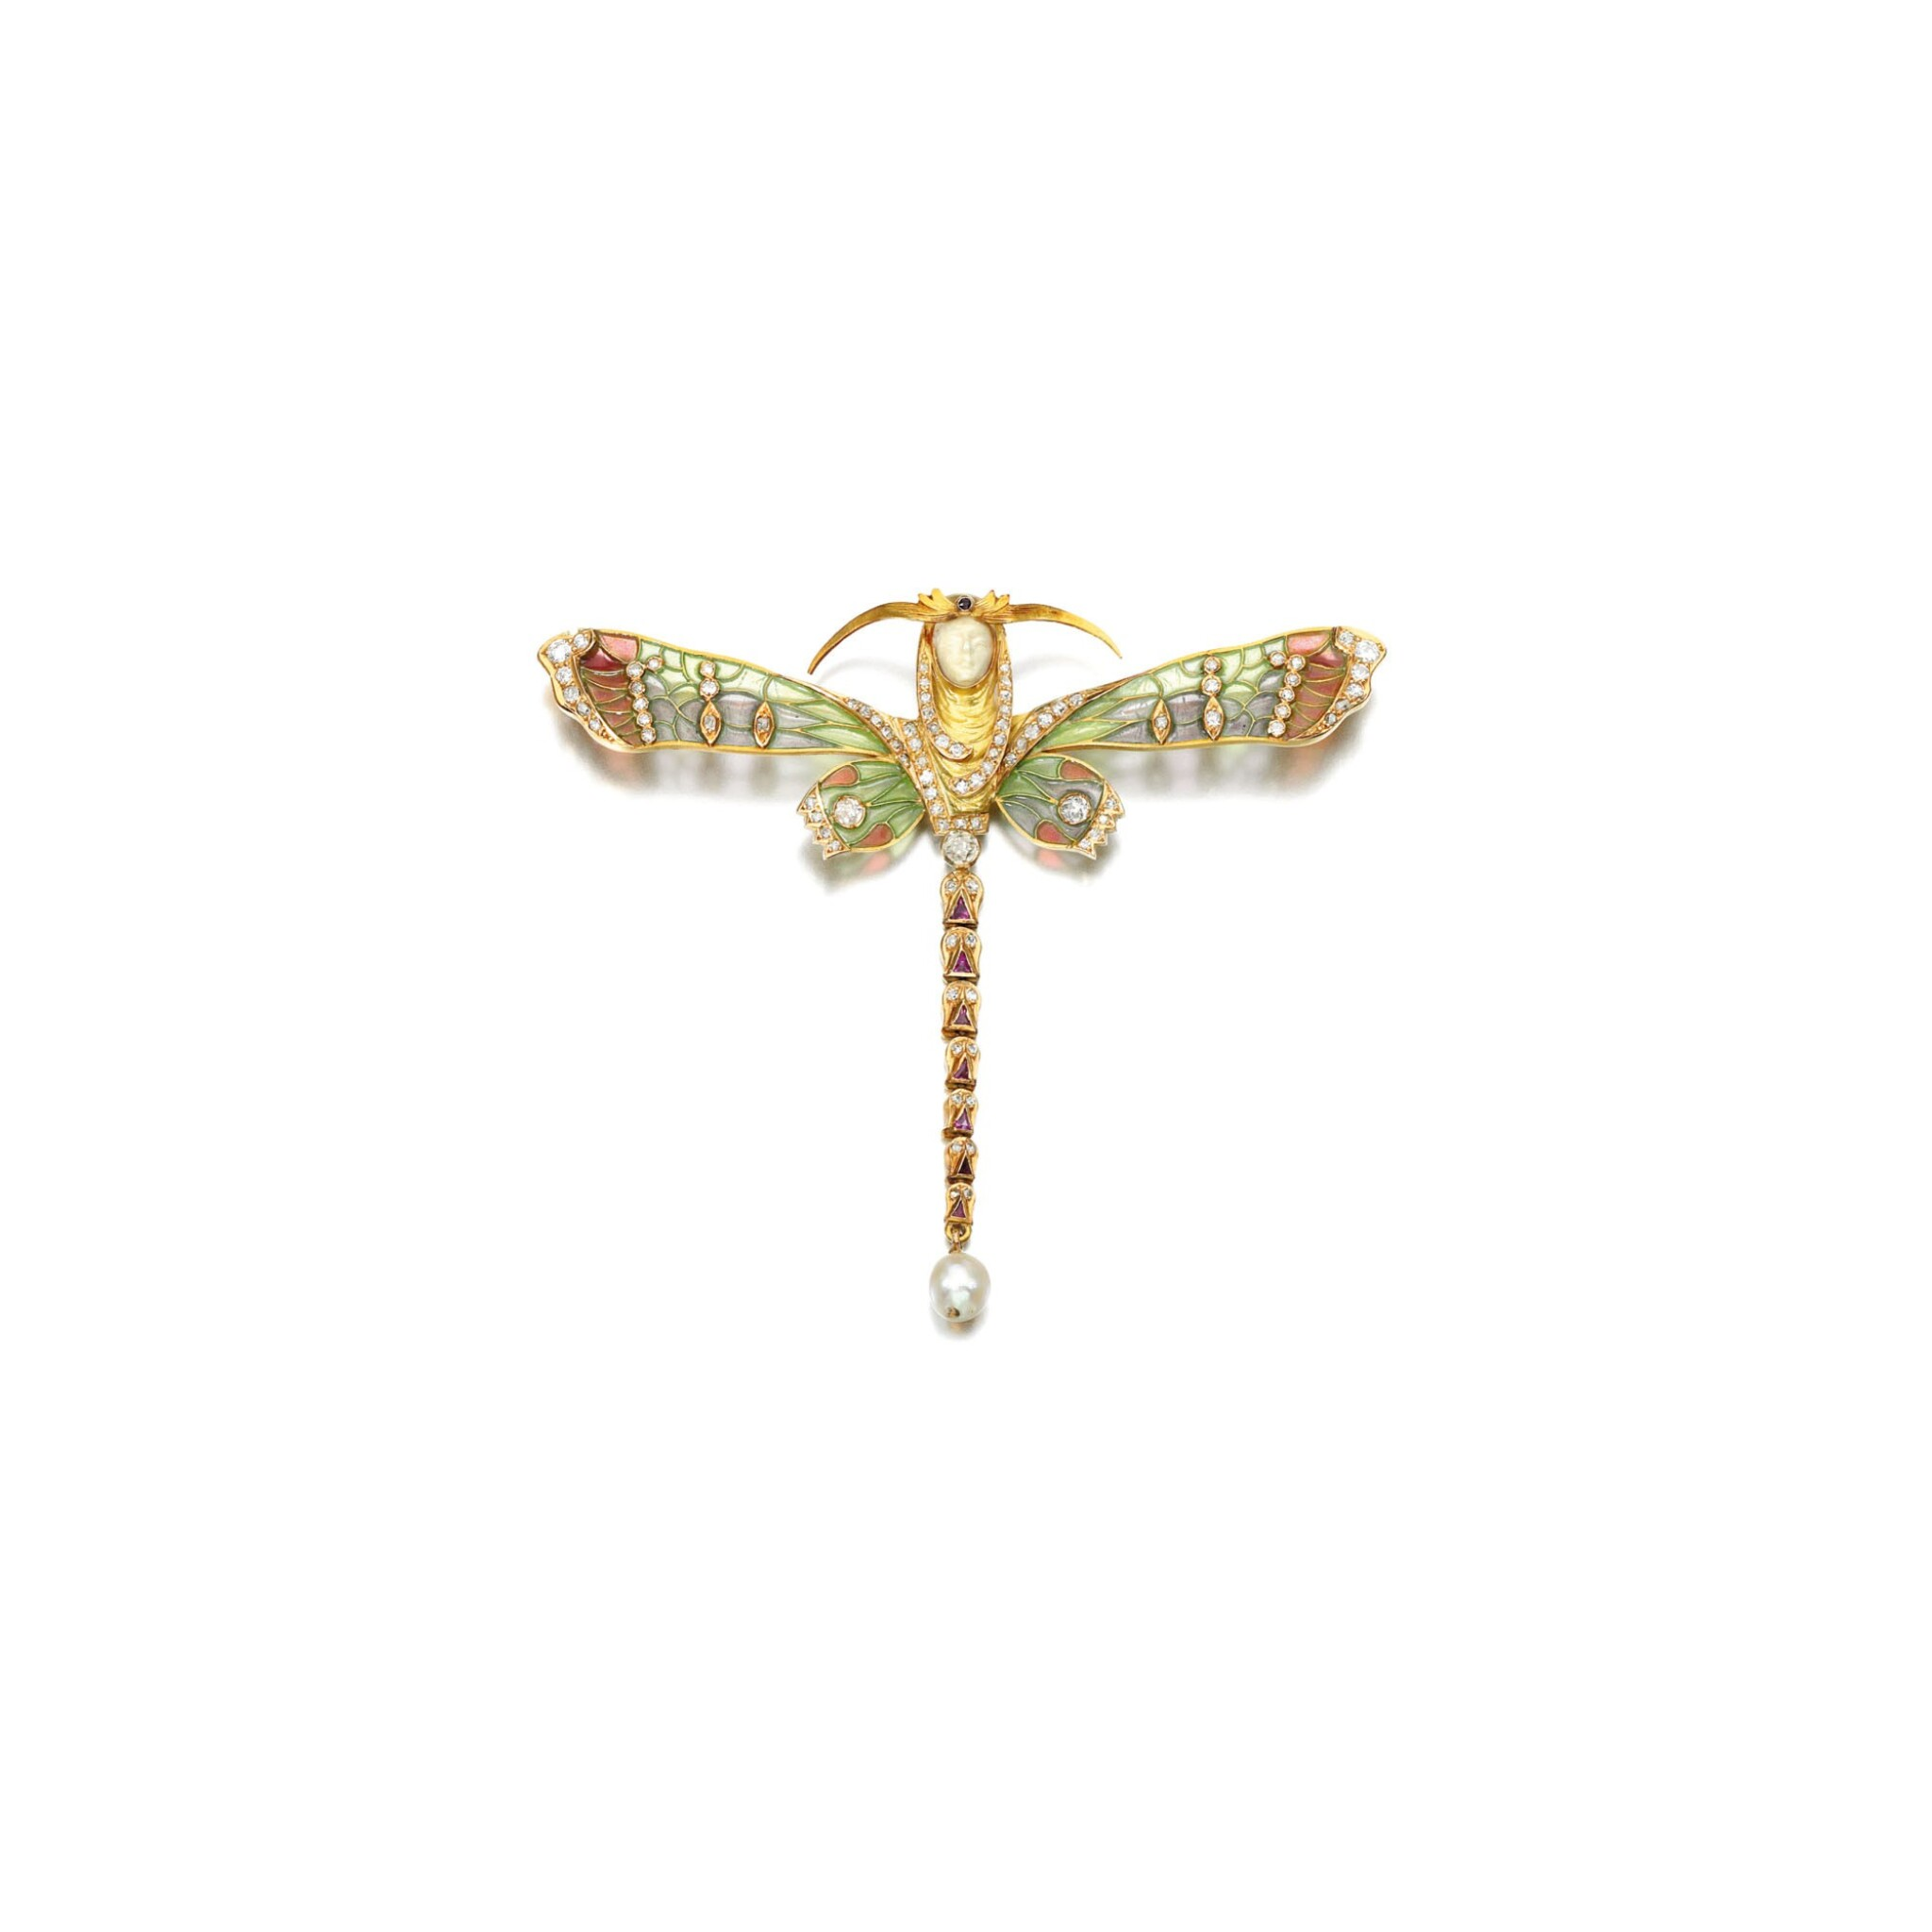 View full screen - View 1 of Lot 221. IVORY, GEM SET AND ENAMEL BROOCH, MASRIERA Y CARRERA, 1920S.